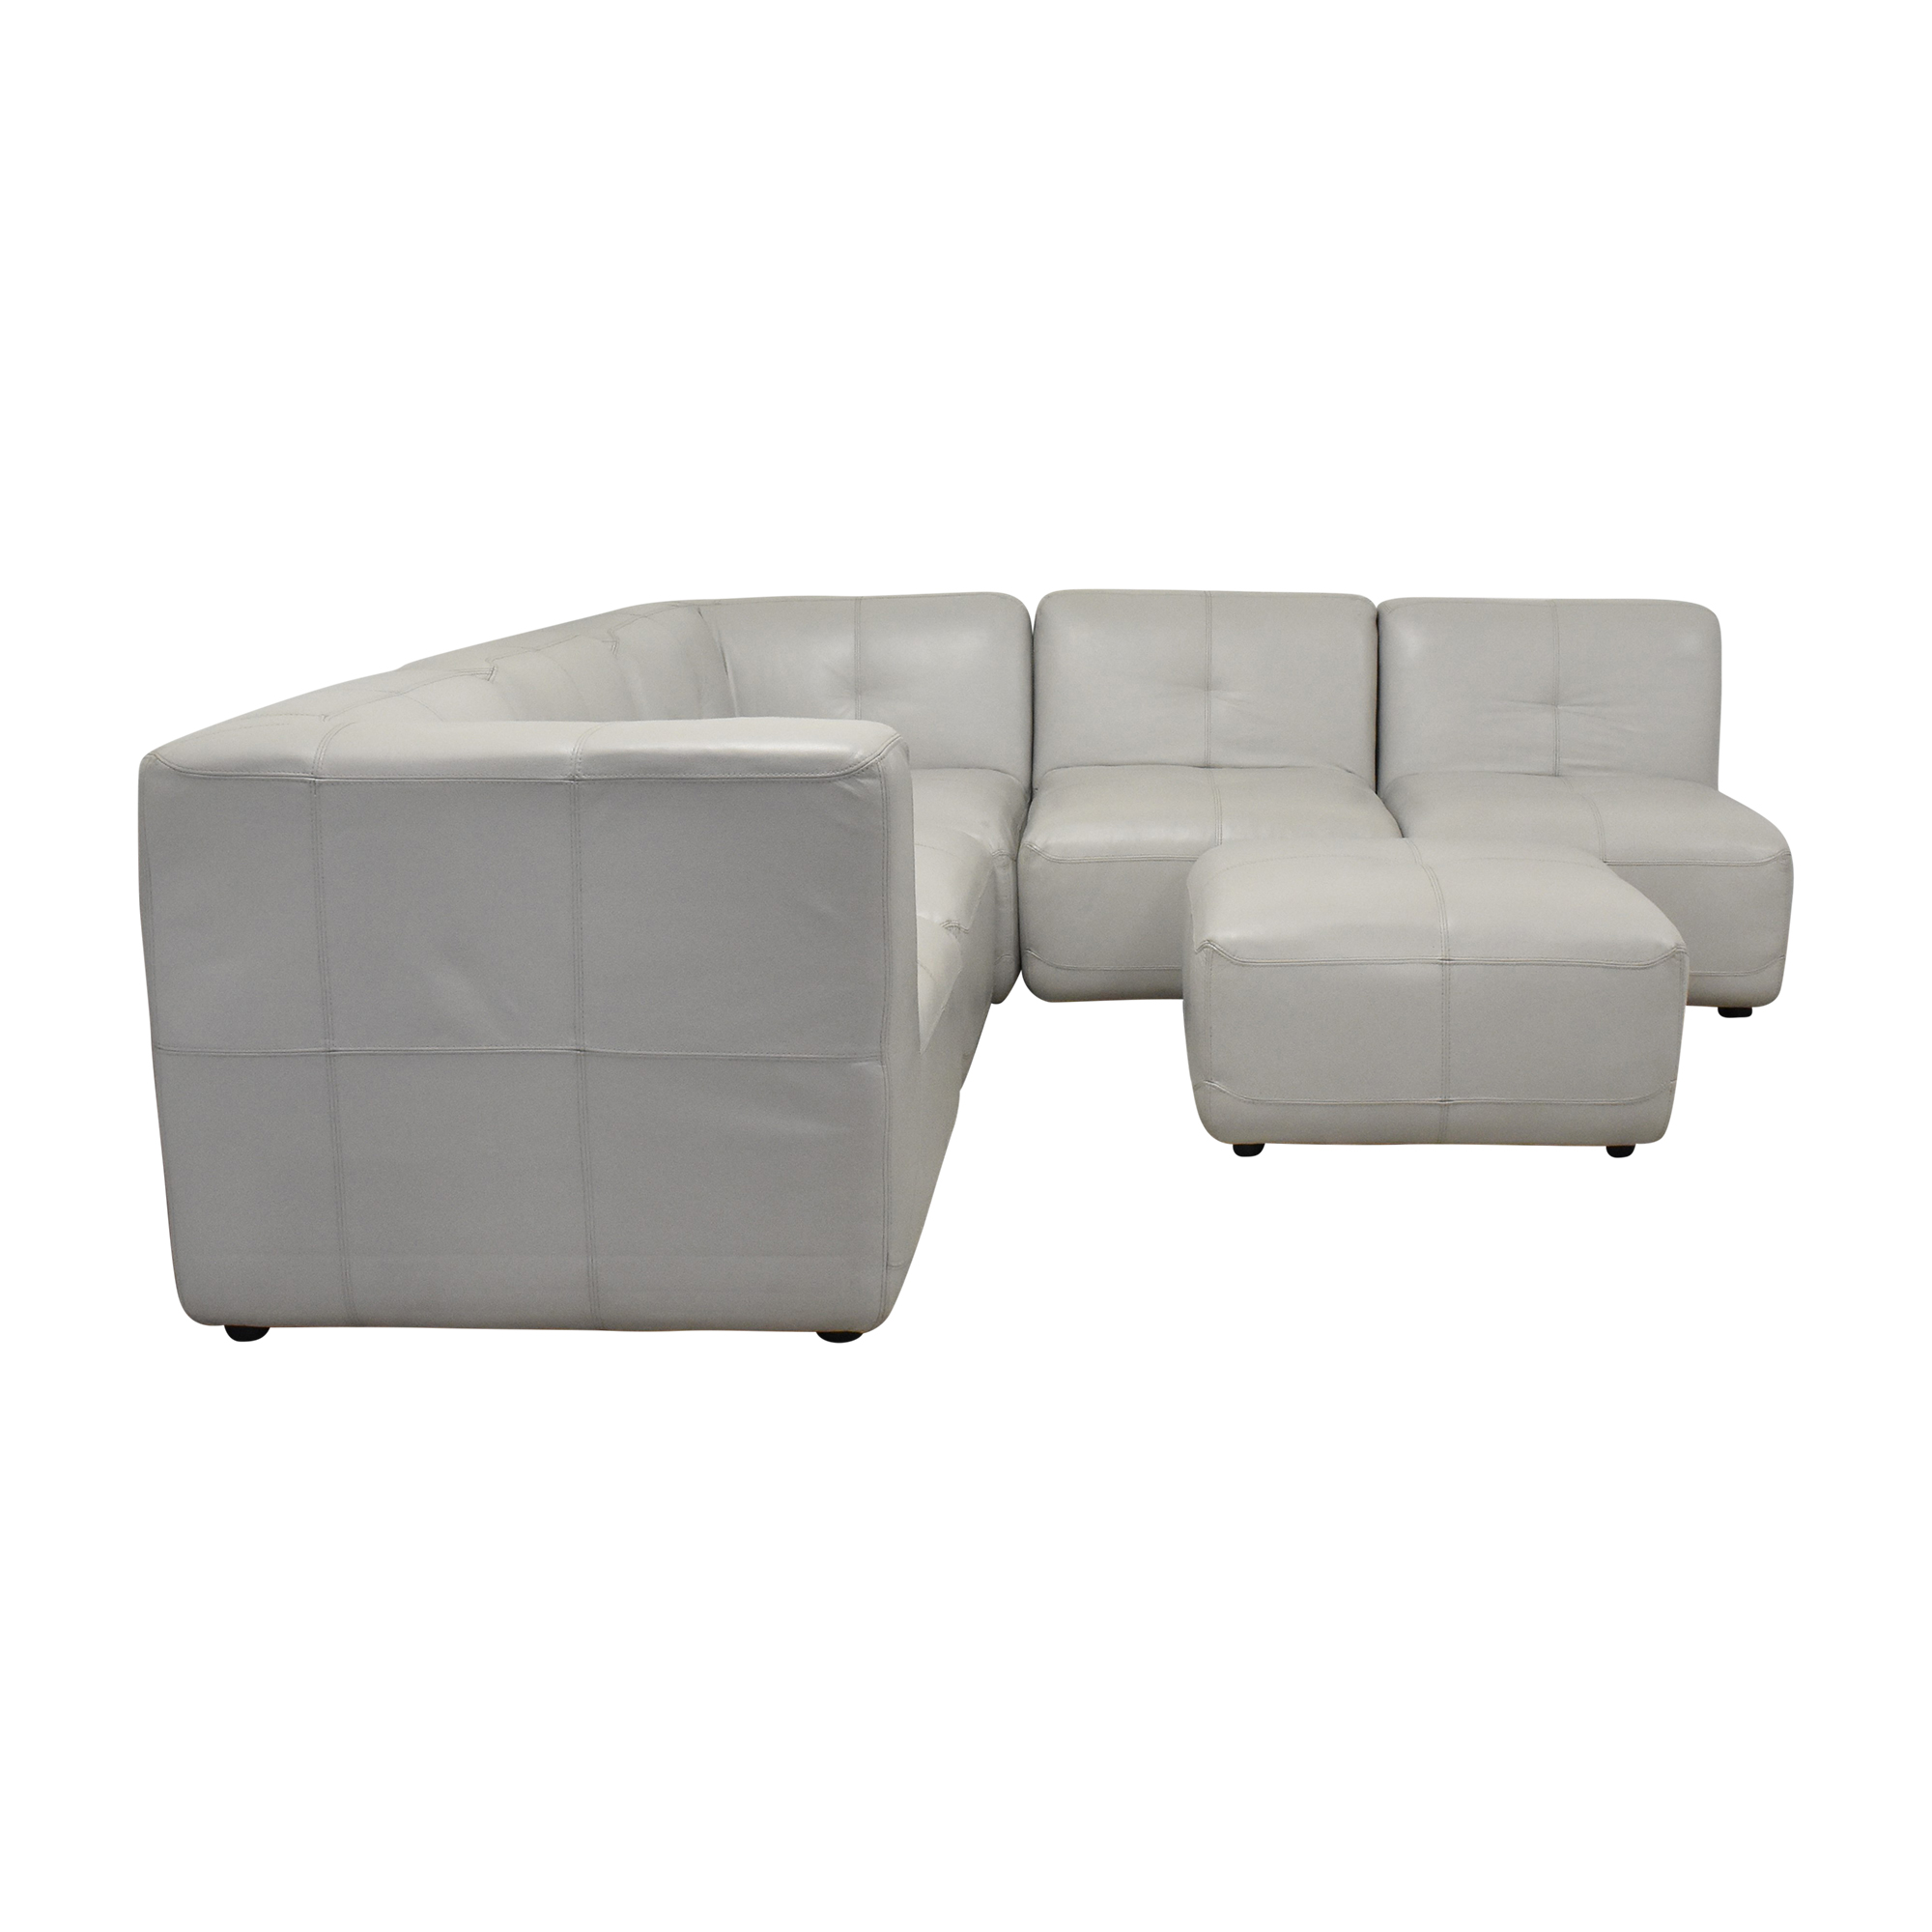 buy Chateau d'Ax Chateau d'Ax Modular Sectional online